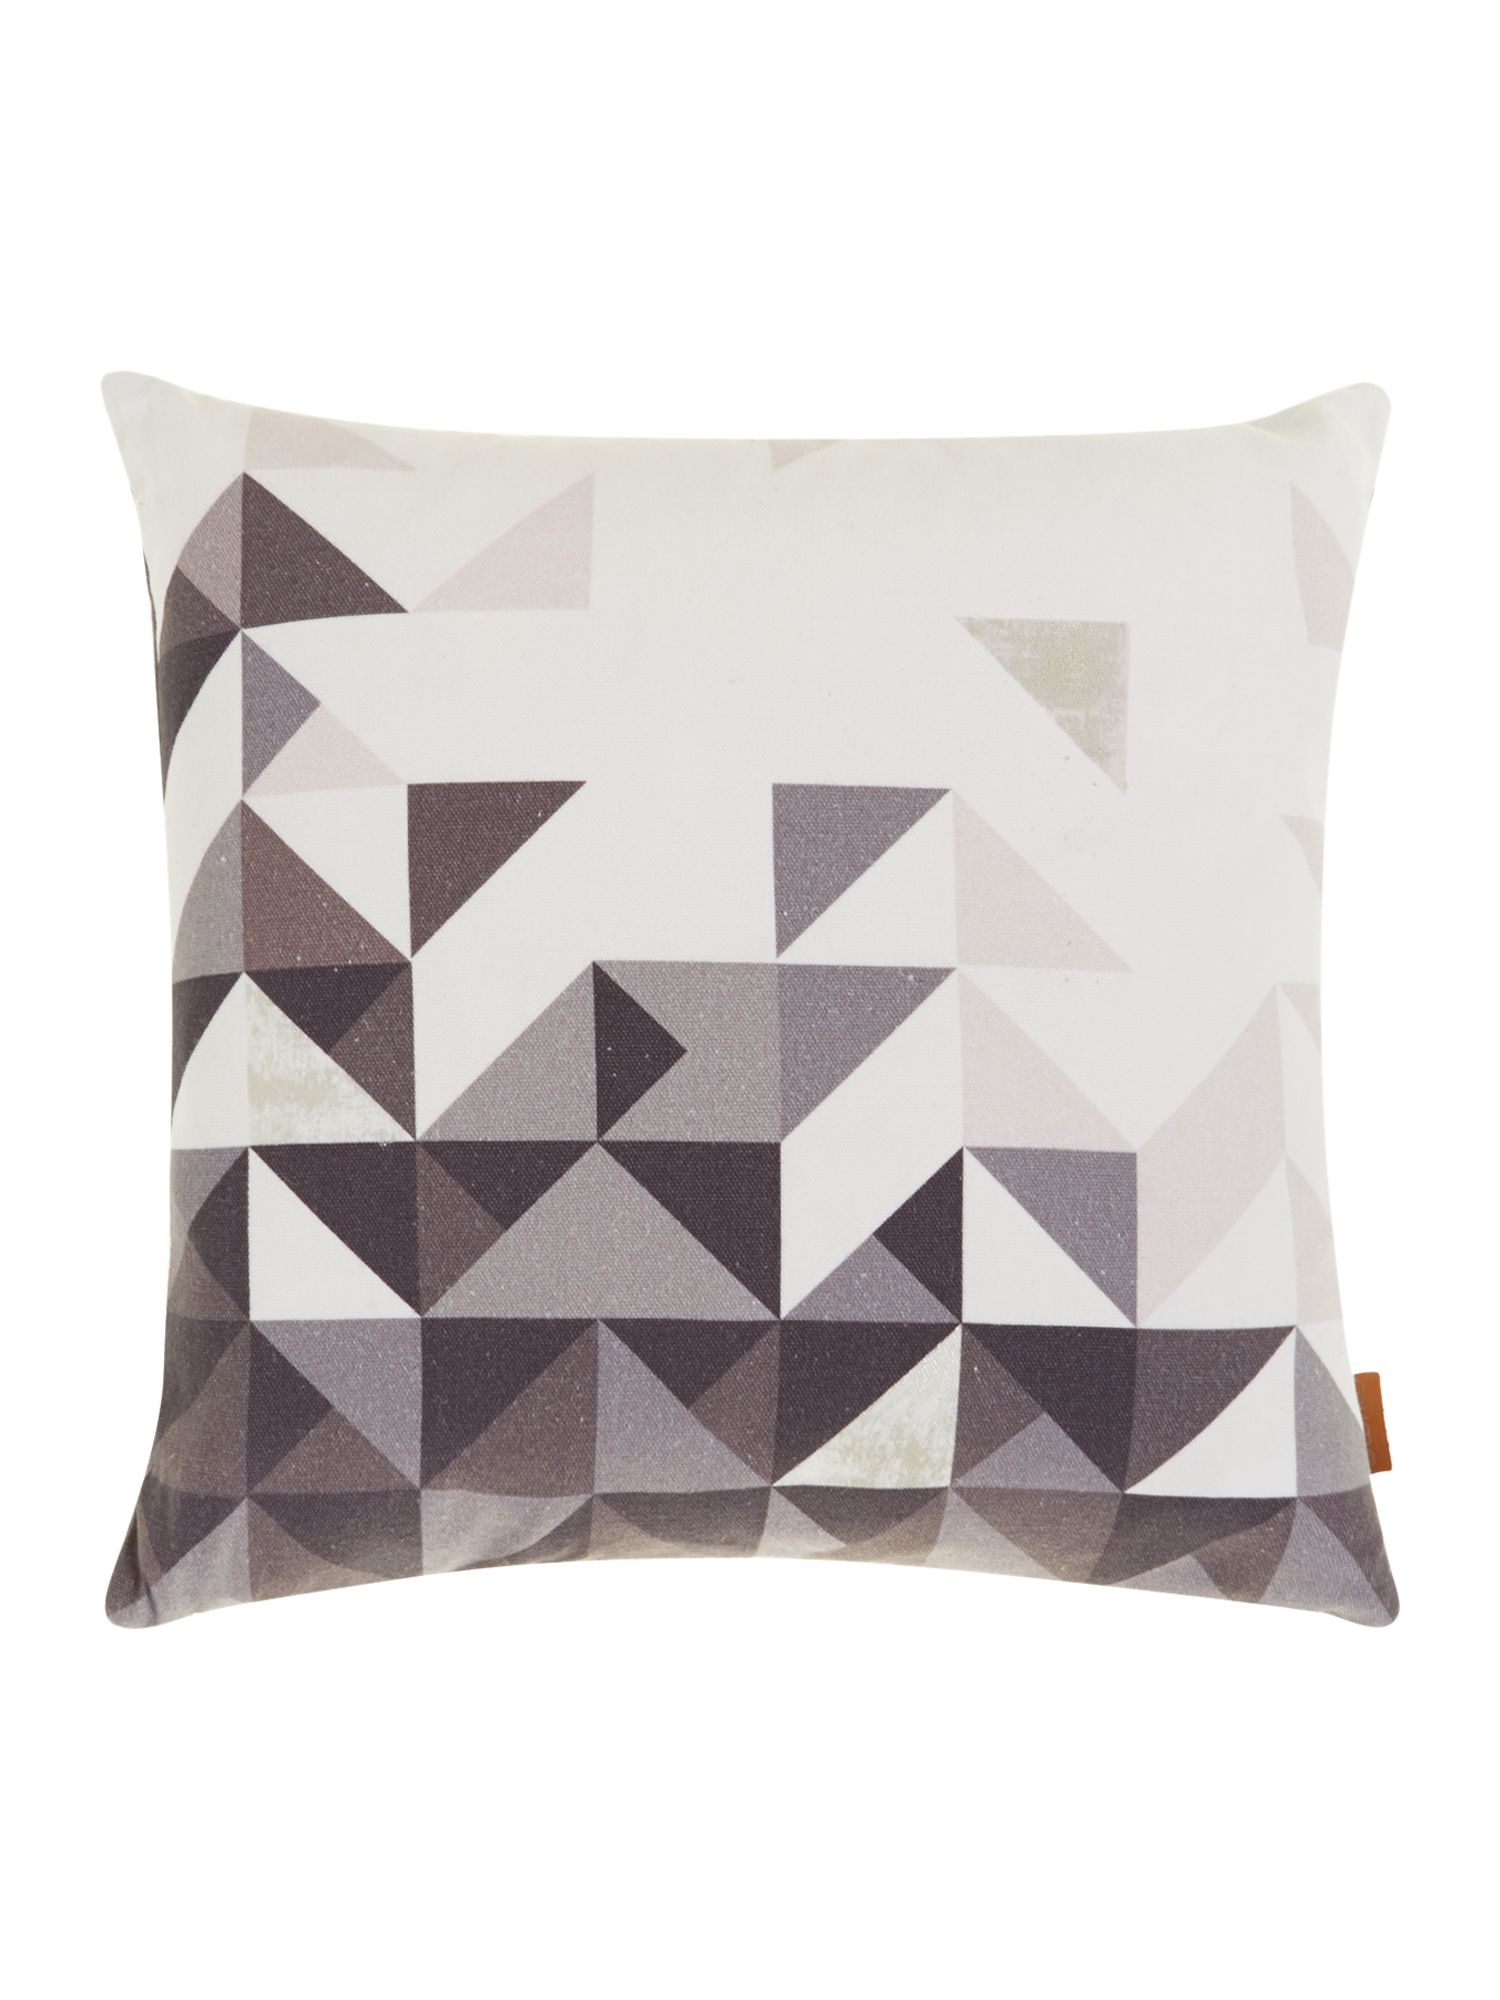 Paulista grey geometric, velvet backed cushion